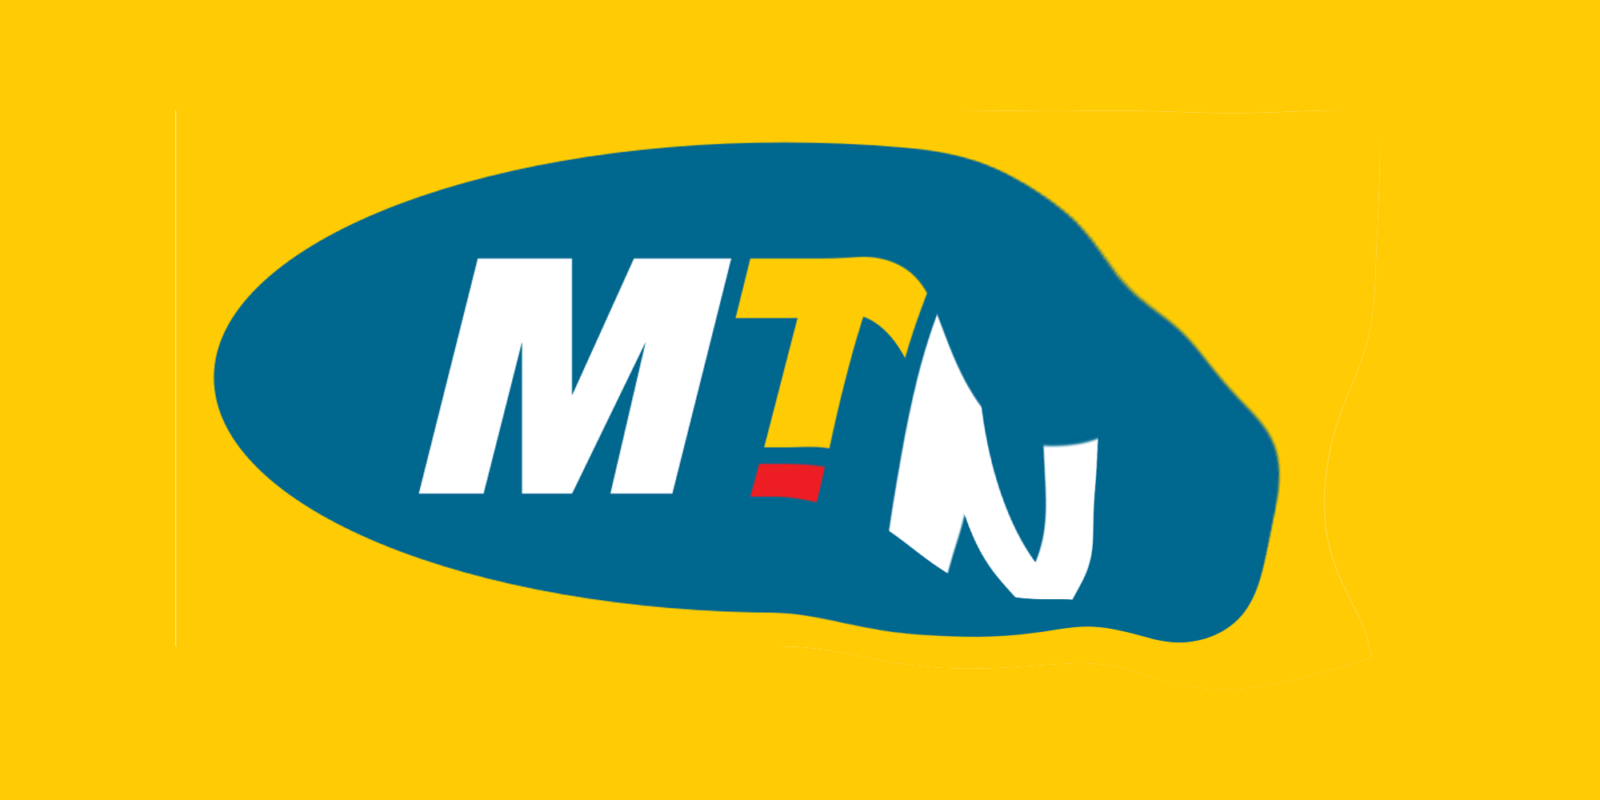 Mtn Scores A Dismal 16 For Data Security In Global Acc